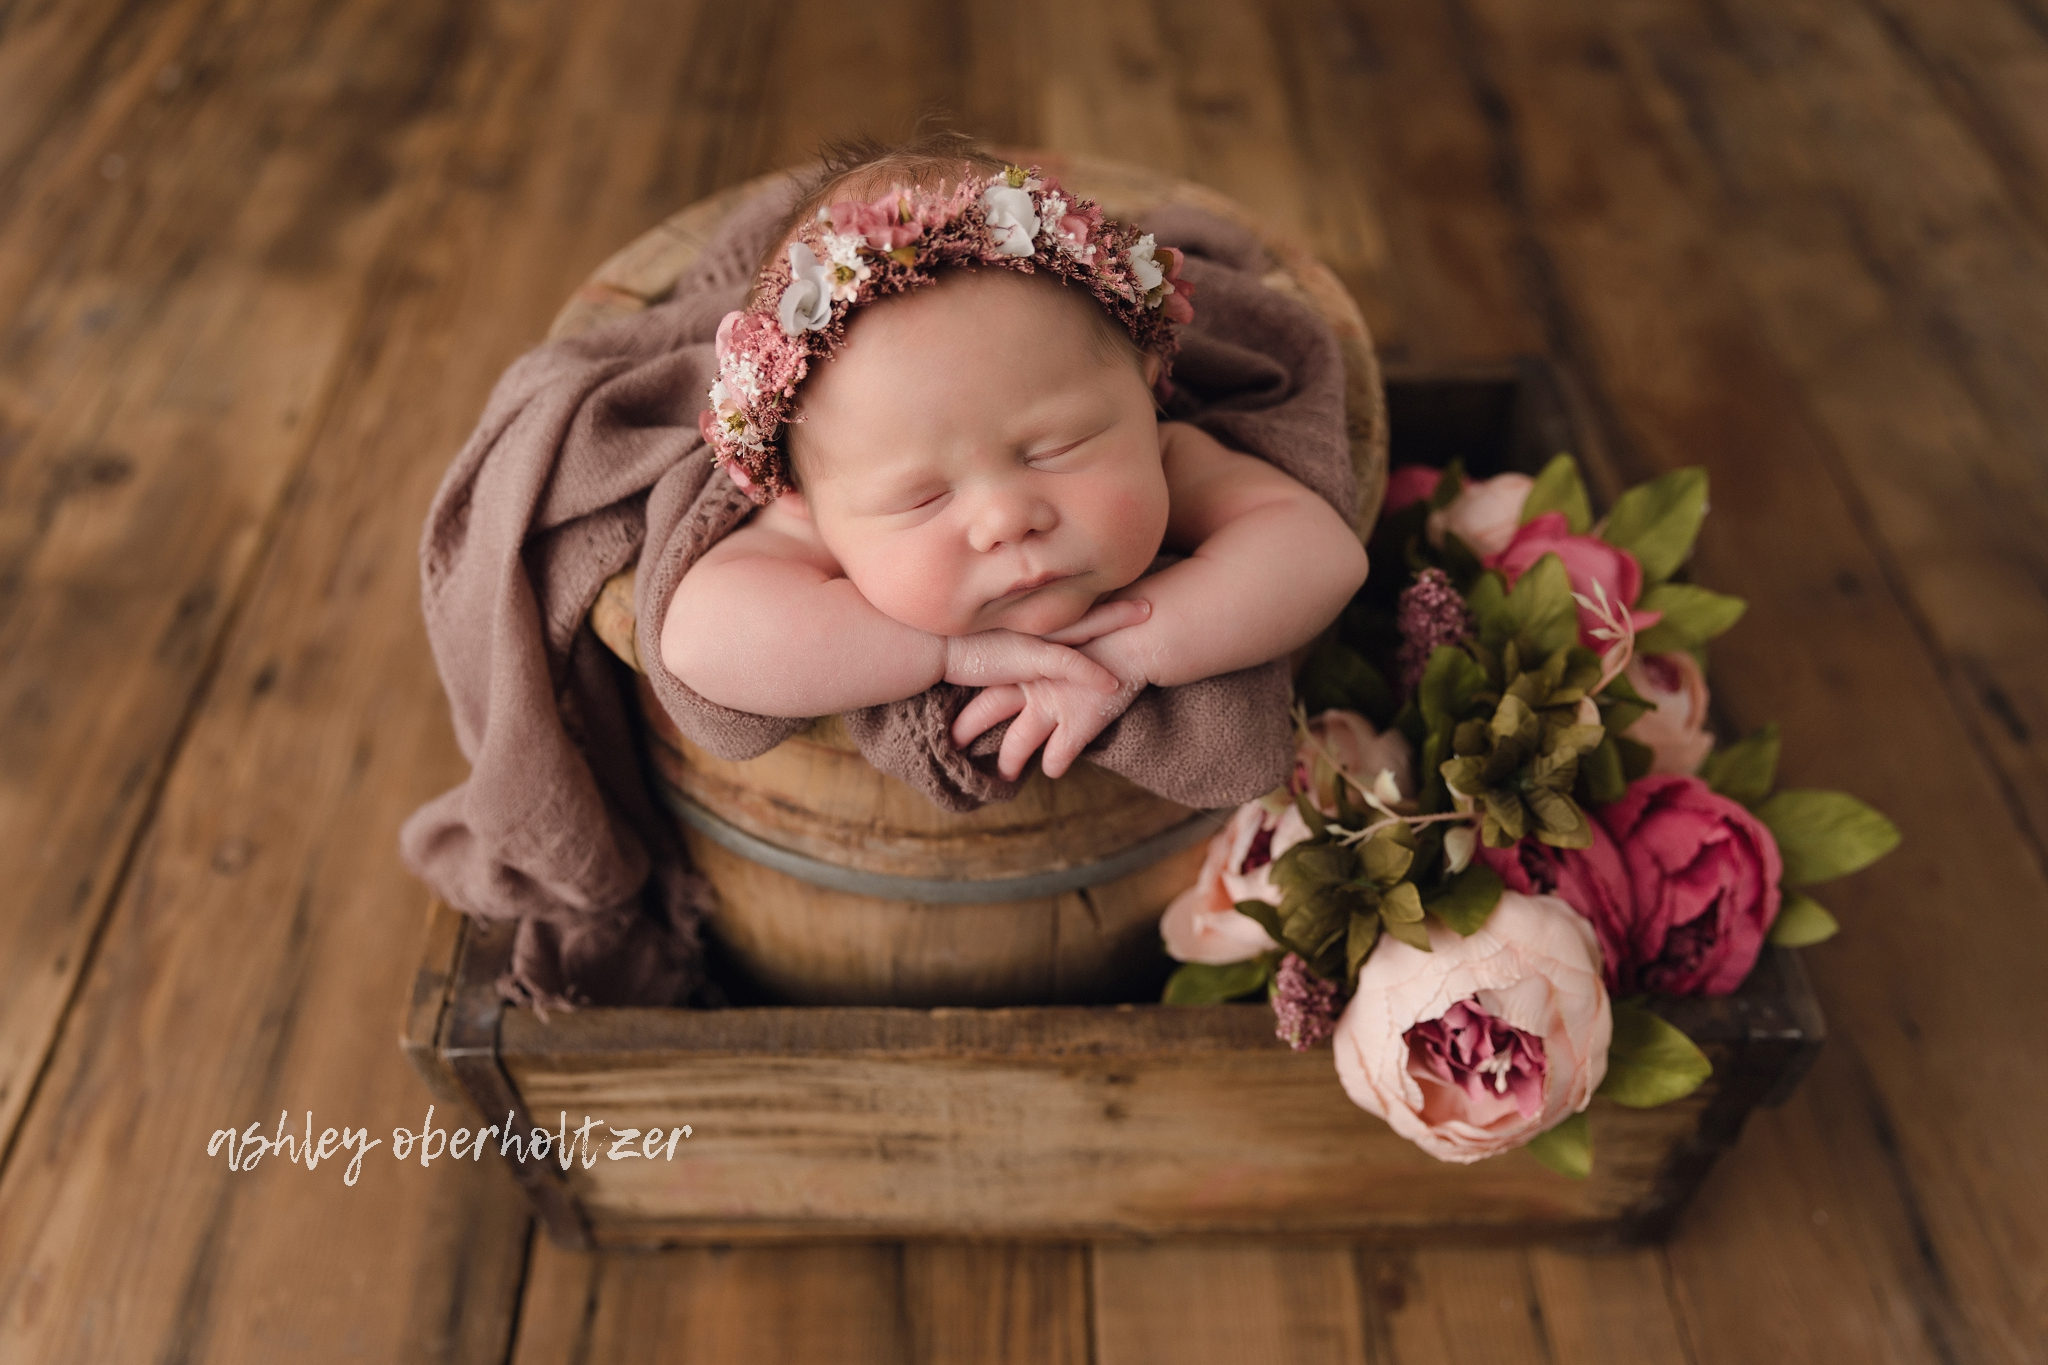 Signe koen fargo newborn photographer mentoring ashley oberholtzer photography fargo nd newborn baby photographer